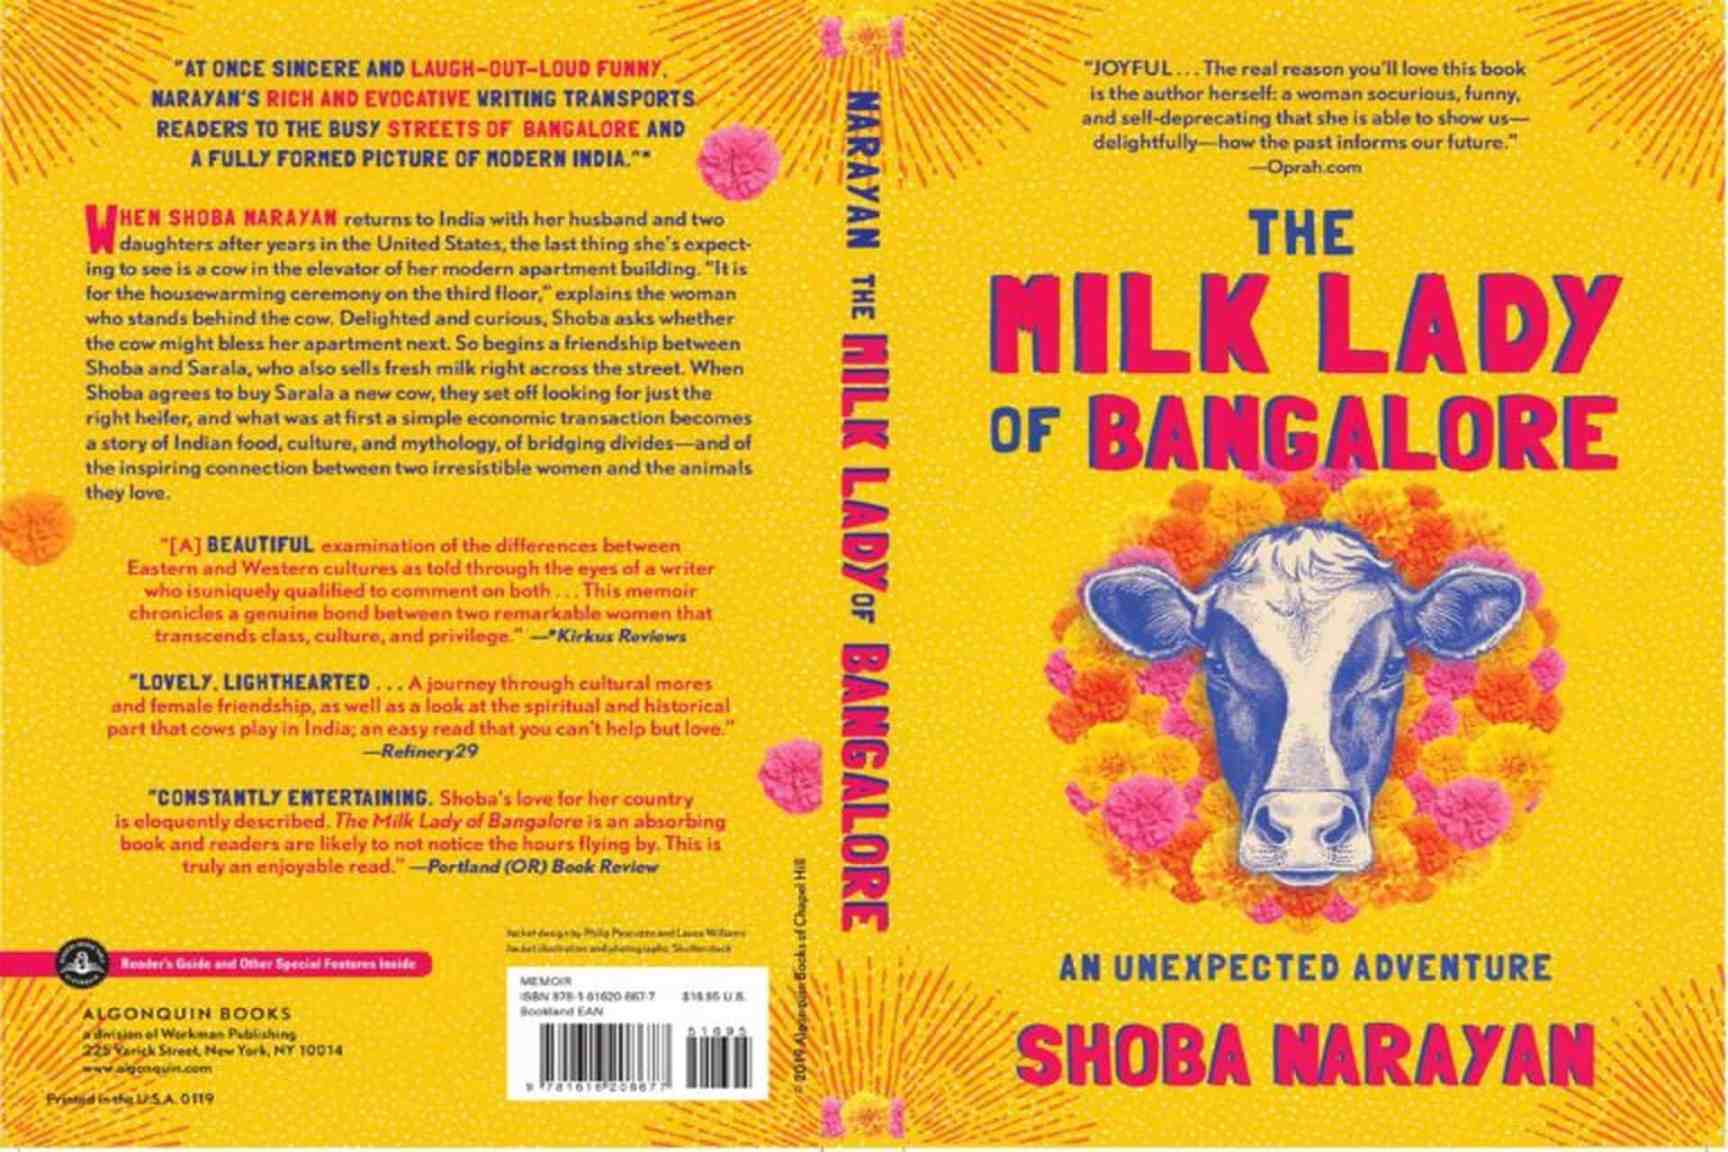 The Milk Lady of Bangalore in Paperback